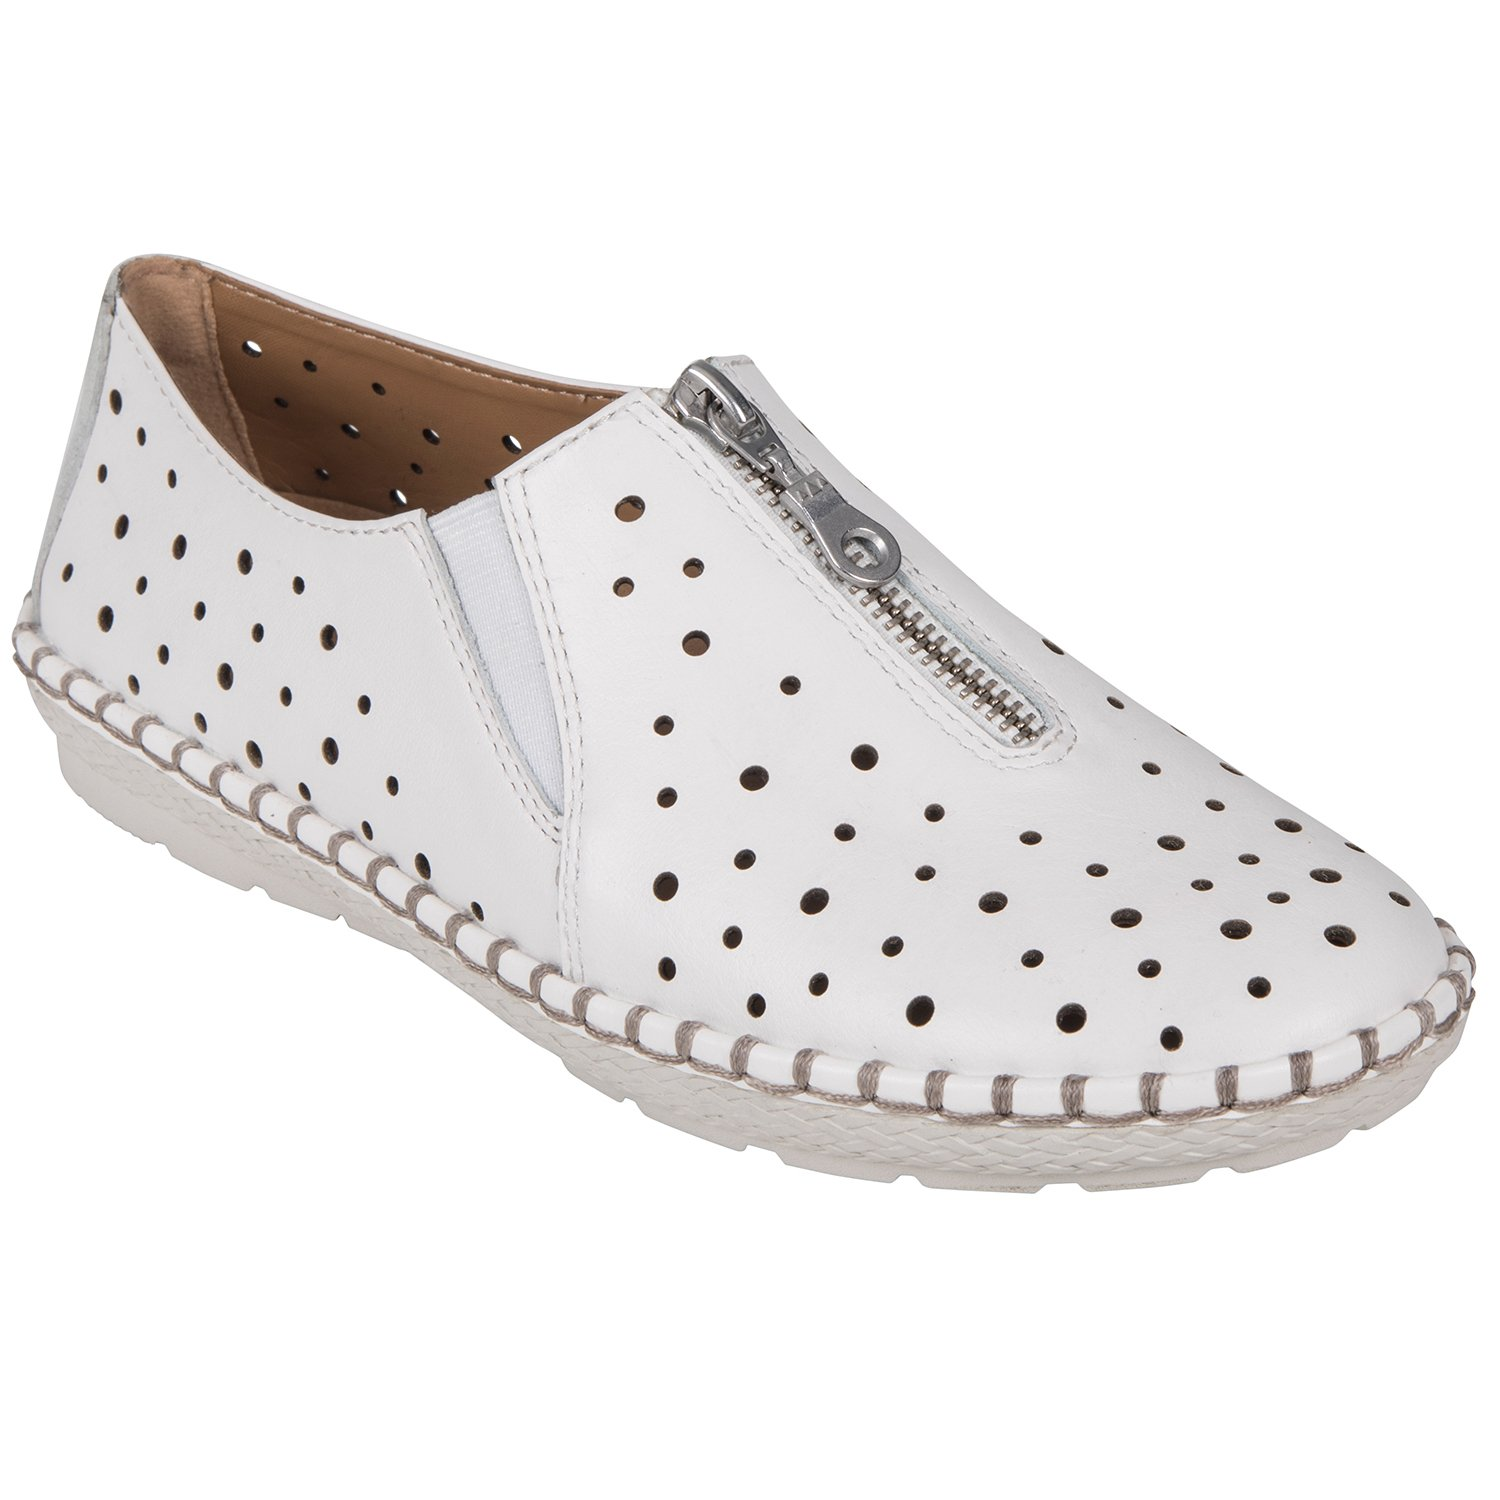 Earth Shoes Callisto B079627P2G 5.5 B(M) US|White